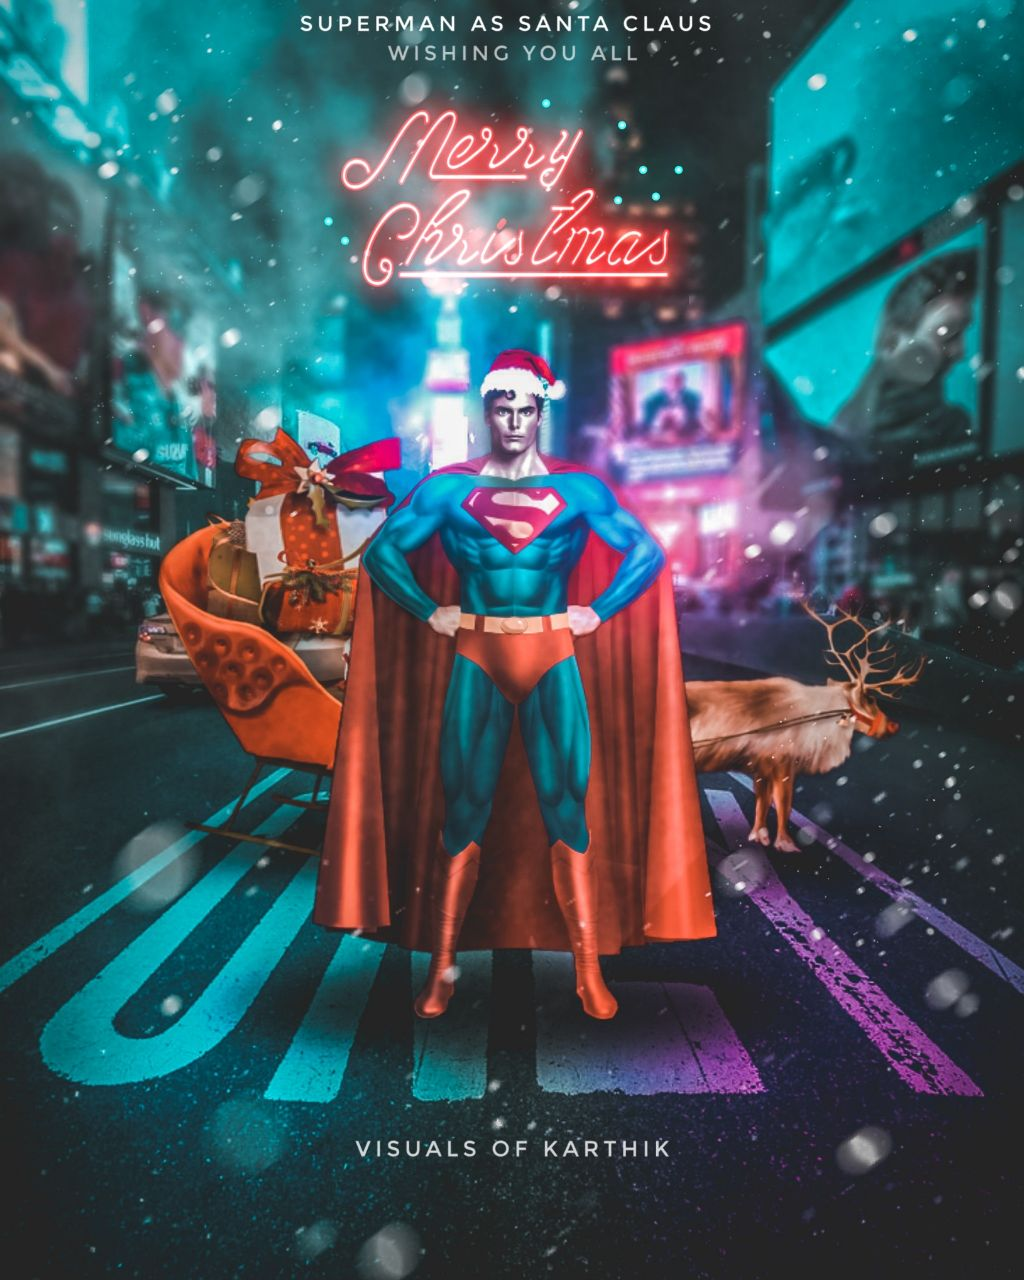 "•Celebrate this Christmas with ""Super Santa"" 🎅• ""SuperMan as Santa claus"" 🎄🎇🎆🎉🎅 Merry Christmas everyone have a Great Holiday   Please Subscribe my YouTube channel for edit tutorials  Link : https://www.youtube.com/Visualsofkarthik  #Instagram 👉🏻 @imkarthik1997  #Madewithpicsart #madebyme #MyEdit #PicsArt  #merrychristmas #merryxmas #christmas #xmas #santaclaus #santaoutfit #superman #superhero #superheroes #dc #warnerbros #photography #Photo #photooftheday #photomanipulation #picoftheday #picsartedit #remixedwithpicsart #dailyinspiration #dailyremix #dailytag #dailysticker #dailystickerremix #dailyremixchallenge #festival #festive #light #neon #neonlightsremix #neonlights #ledlights #deerremix #picsartedit #monday #mondaymotivation #lightroom #amazing #interesting"